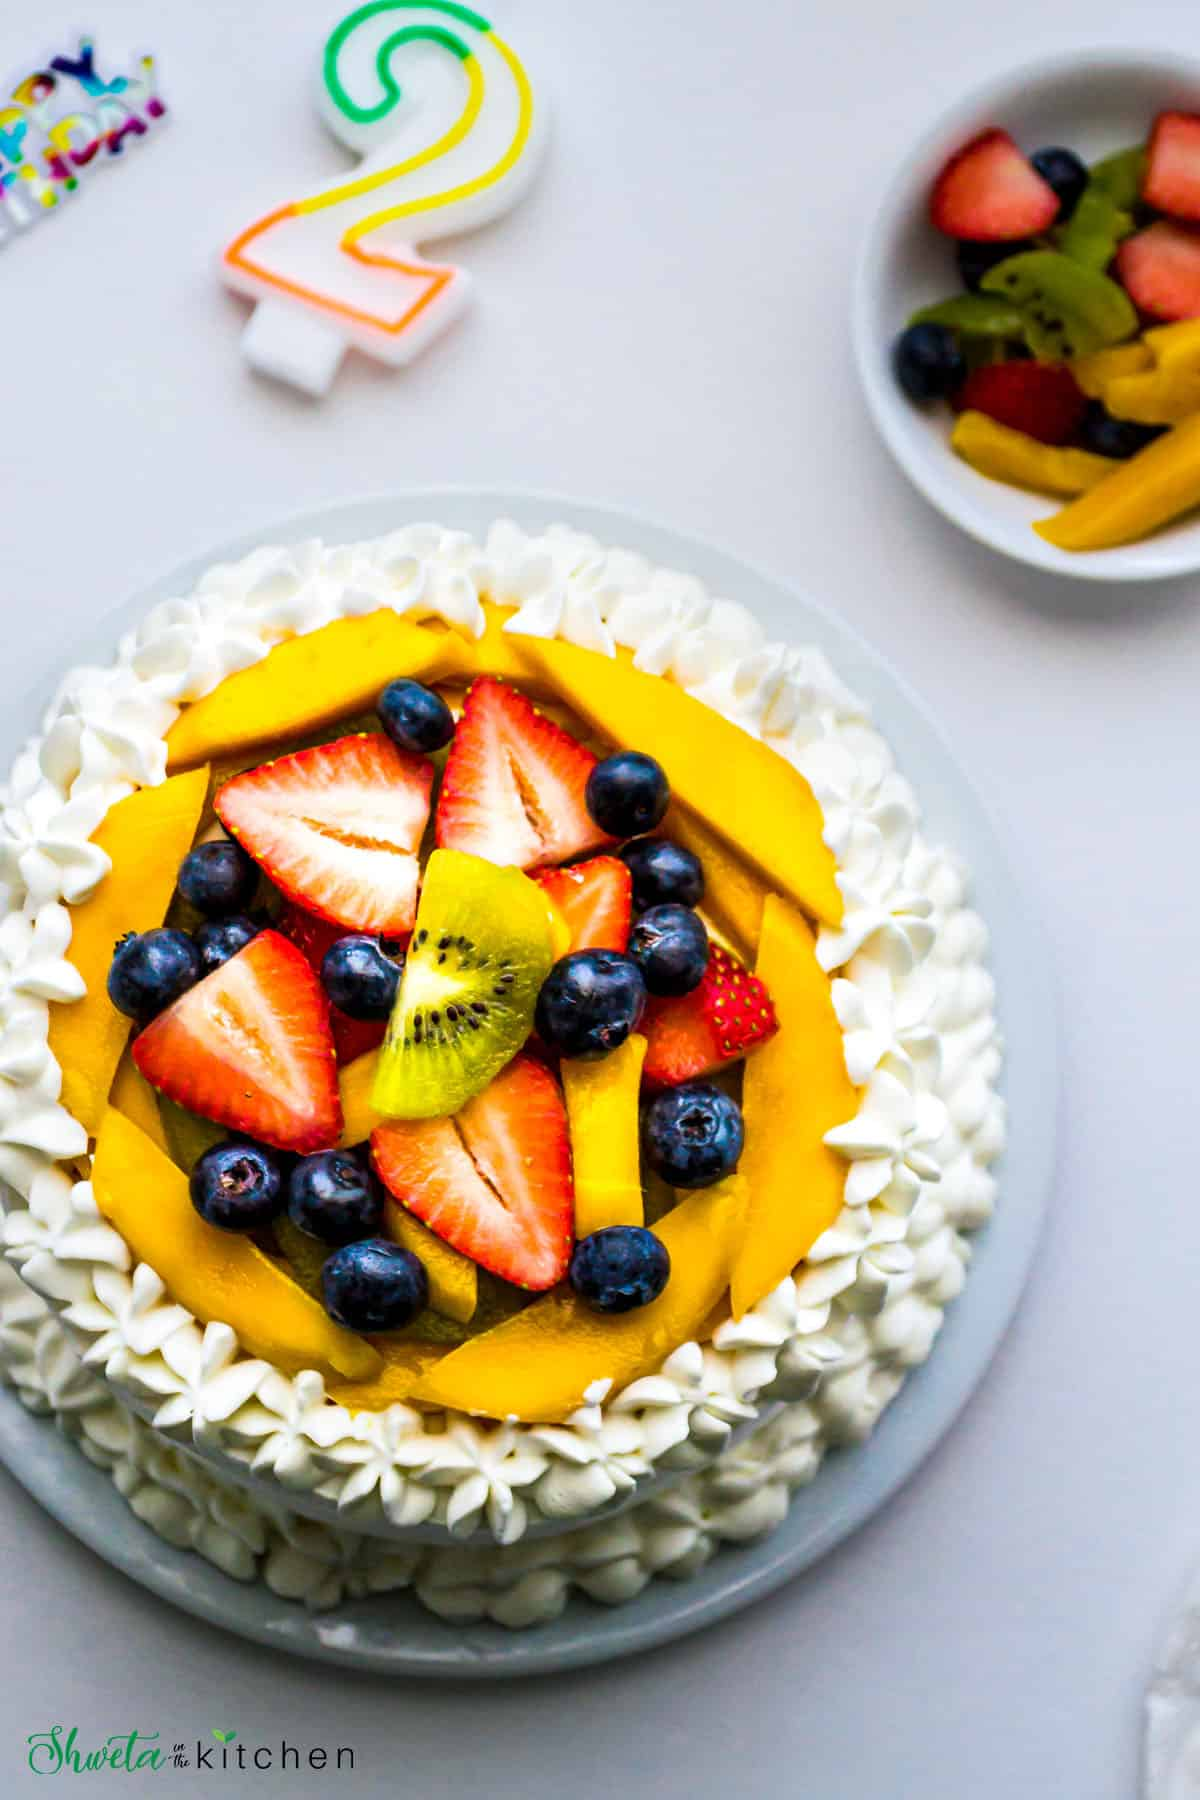 Vanilla Sponge Cake with Whipped Cream frosting and number 2 candle and more fruits on side